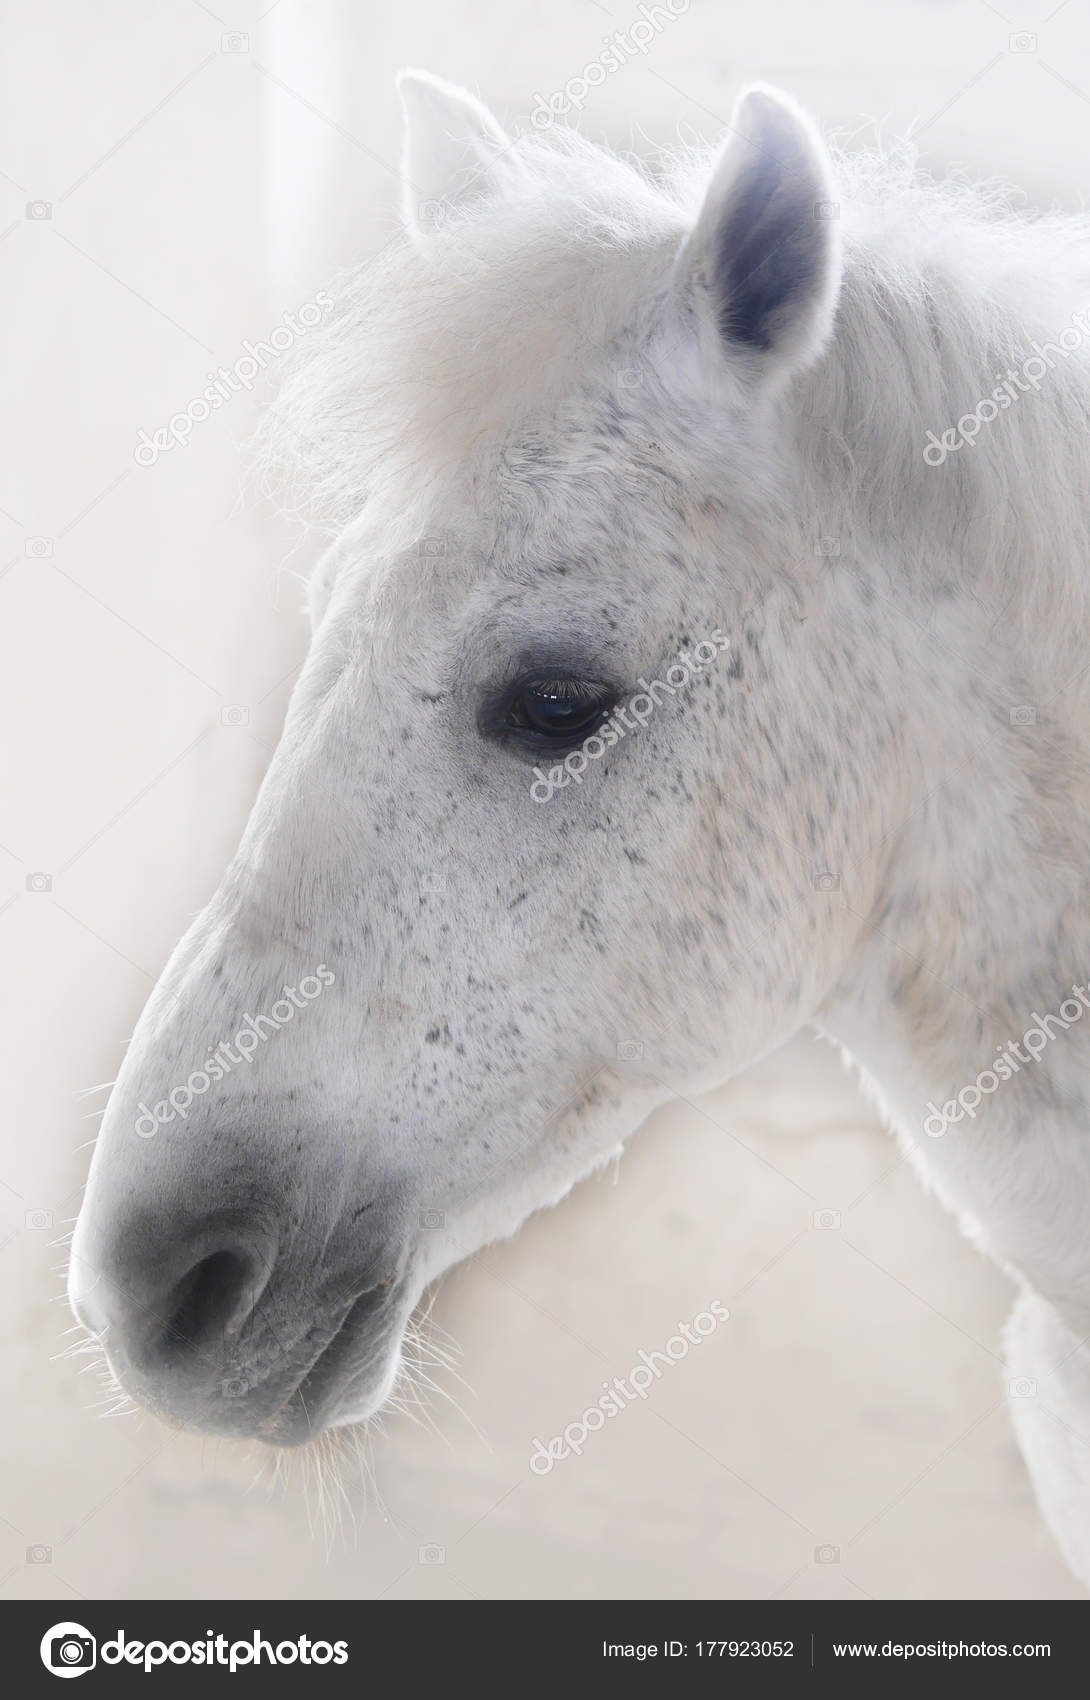 Images Side View Of A Horse Head Side View White Horse Head Fuzzy Background Stock Photo C Tanya Morozz 177923052